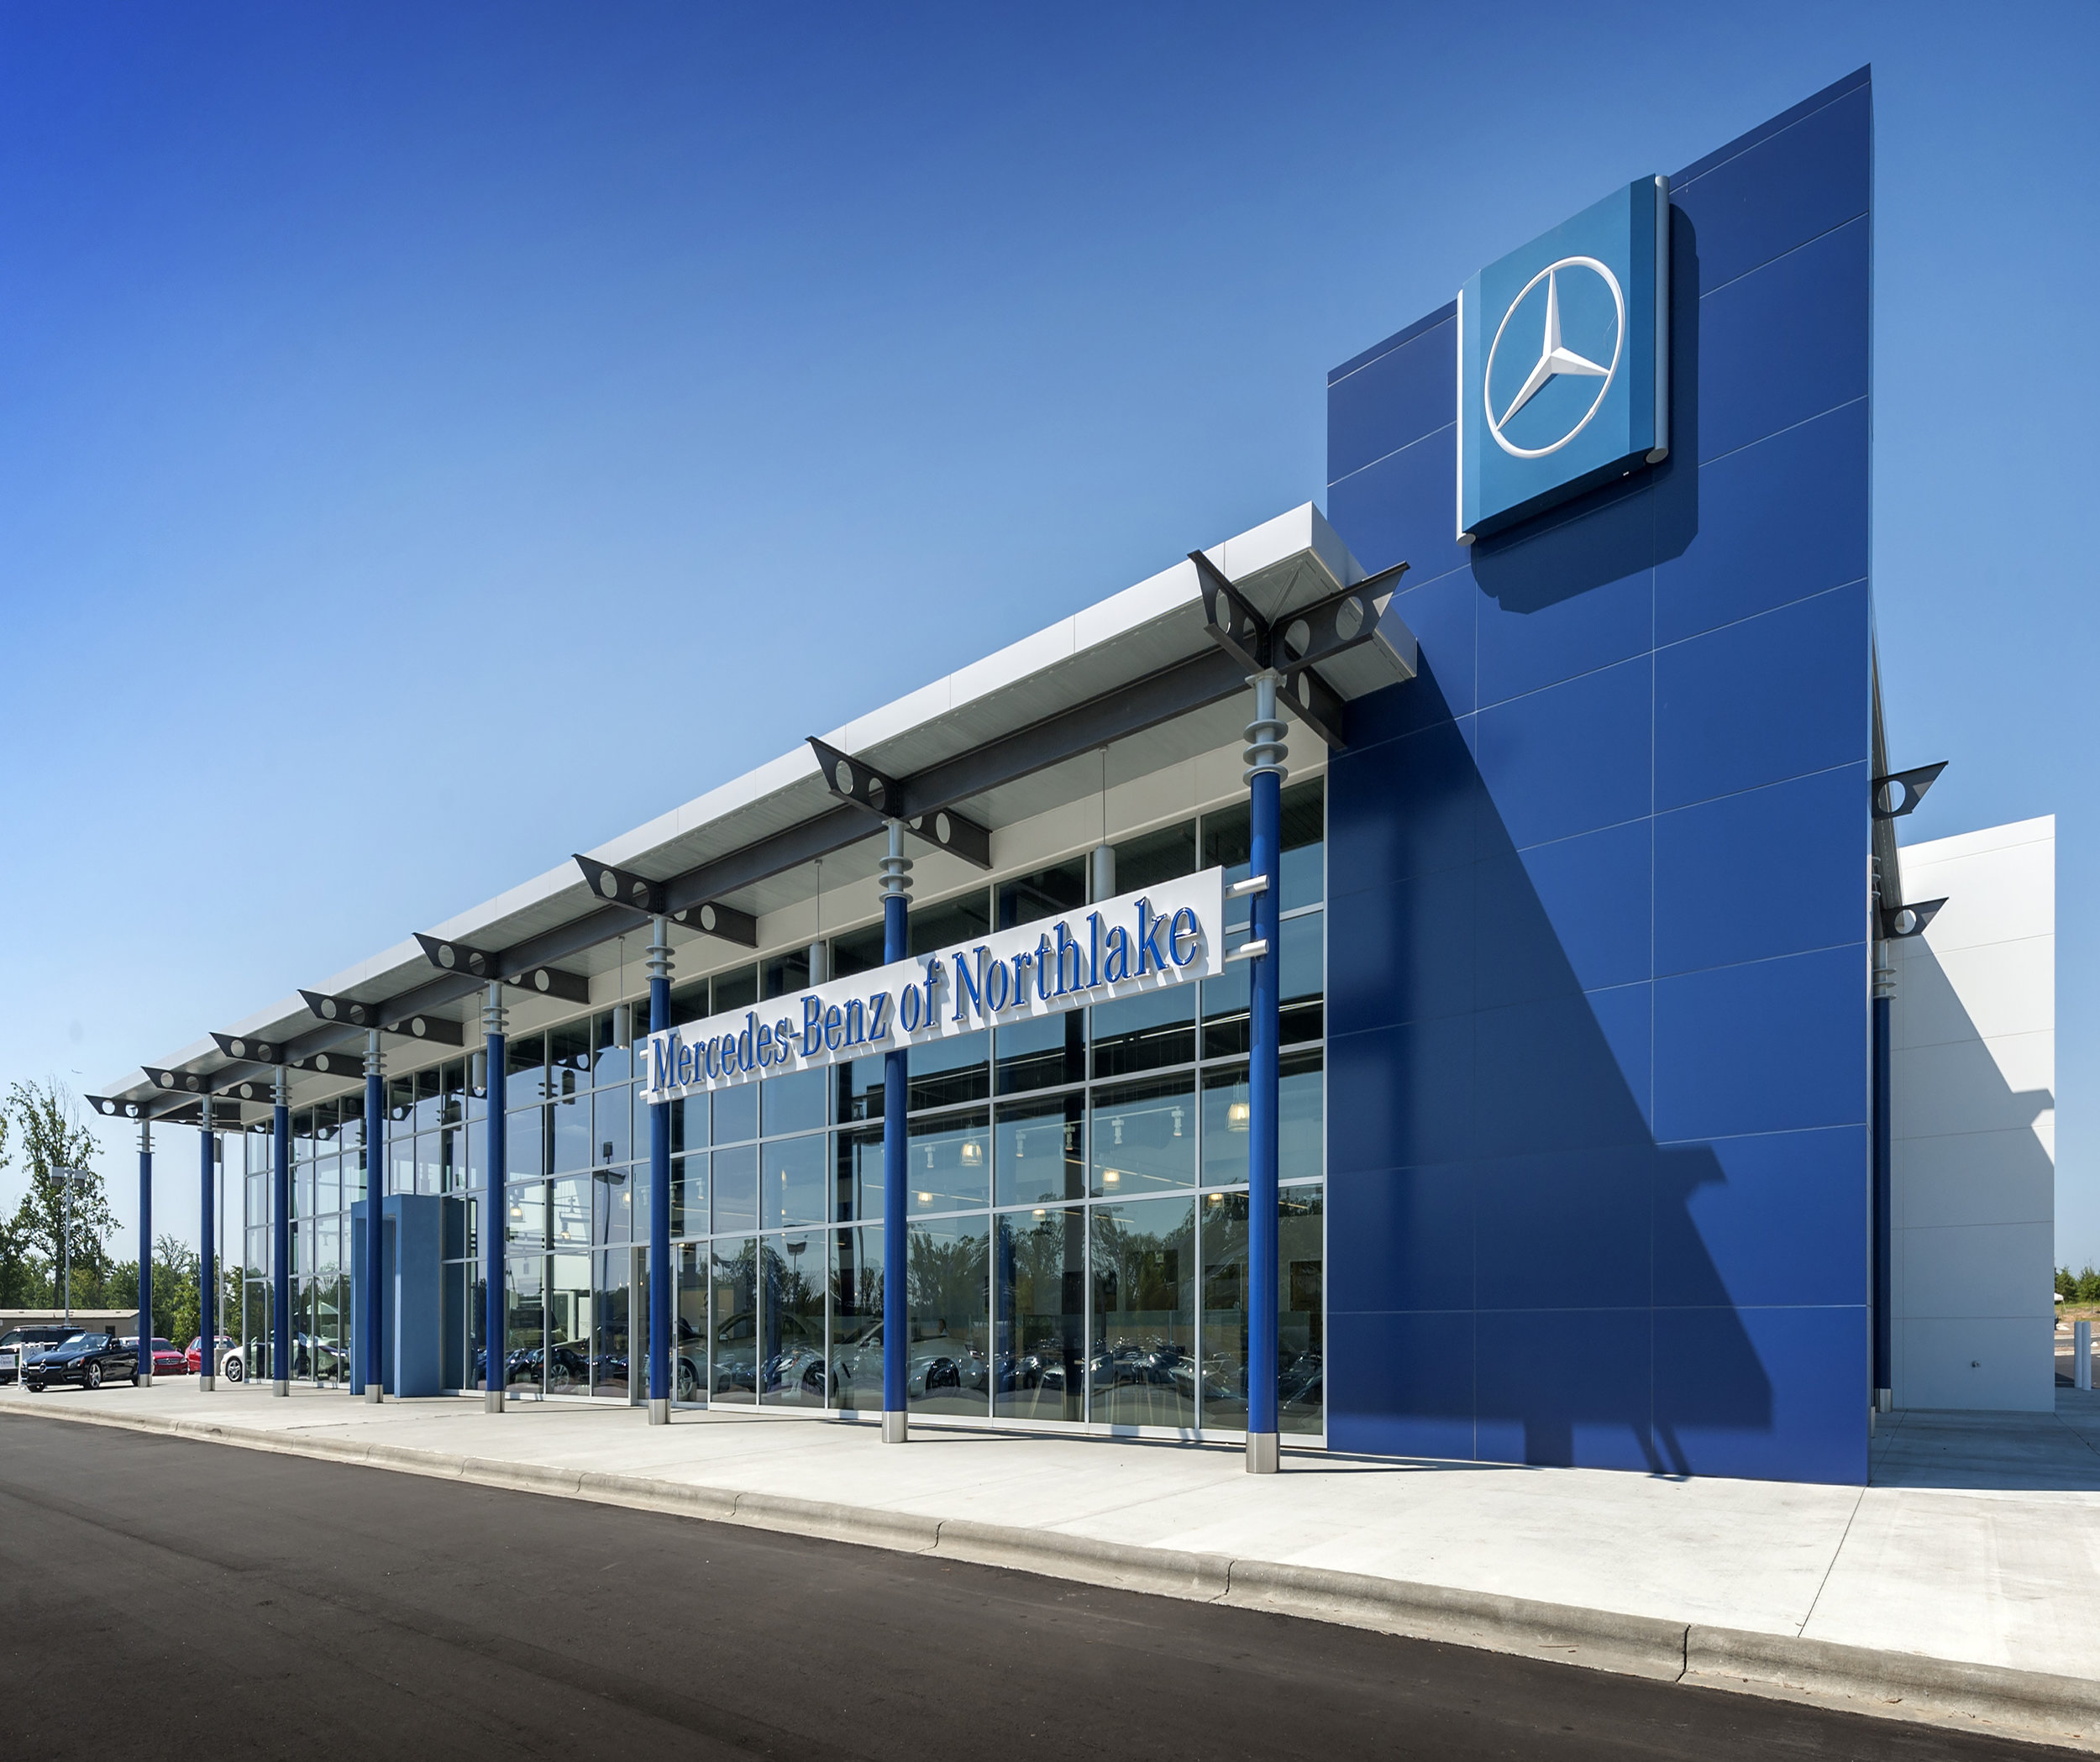 Mercedes-Benz of Northlake